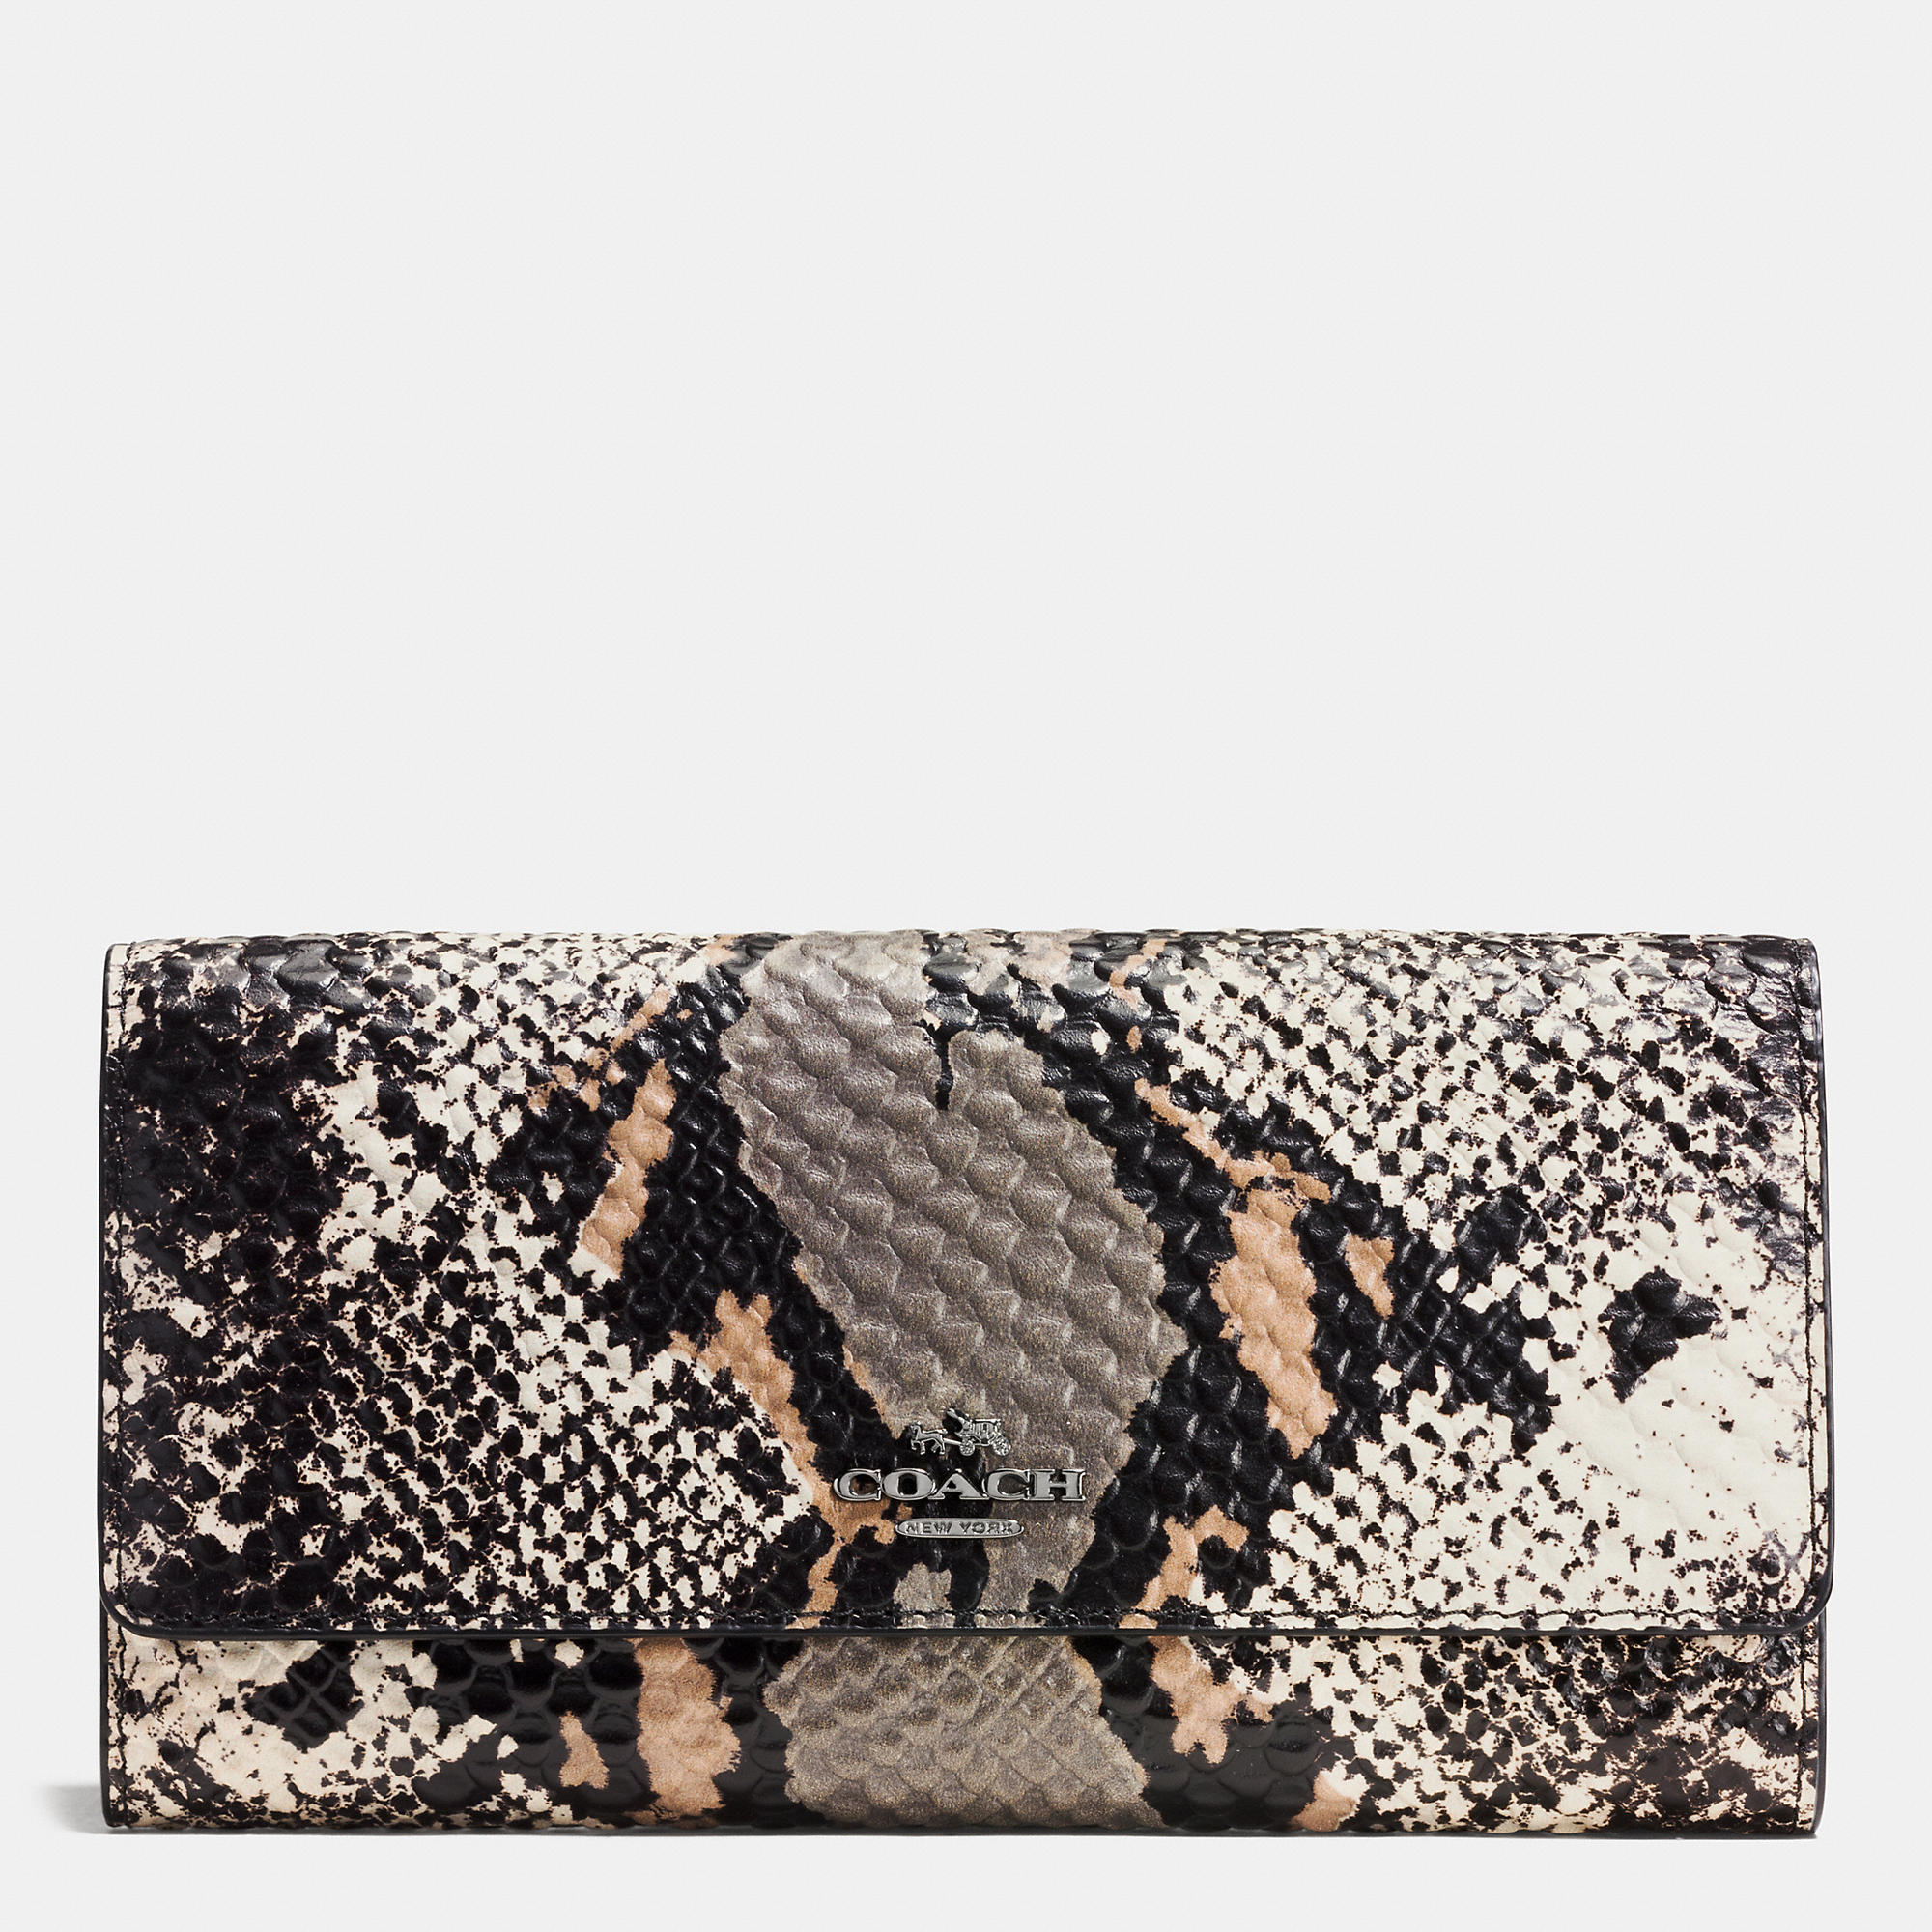 Coach Trifold Wallet In Exotic Embossed Leather